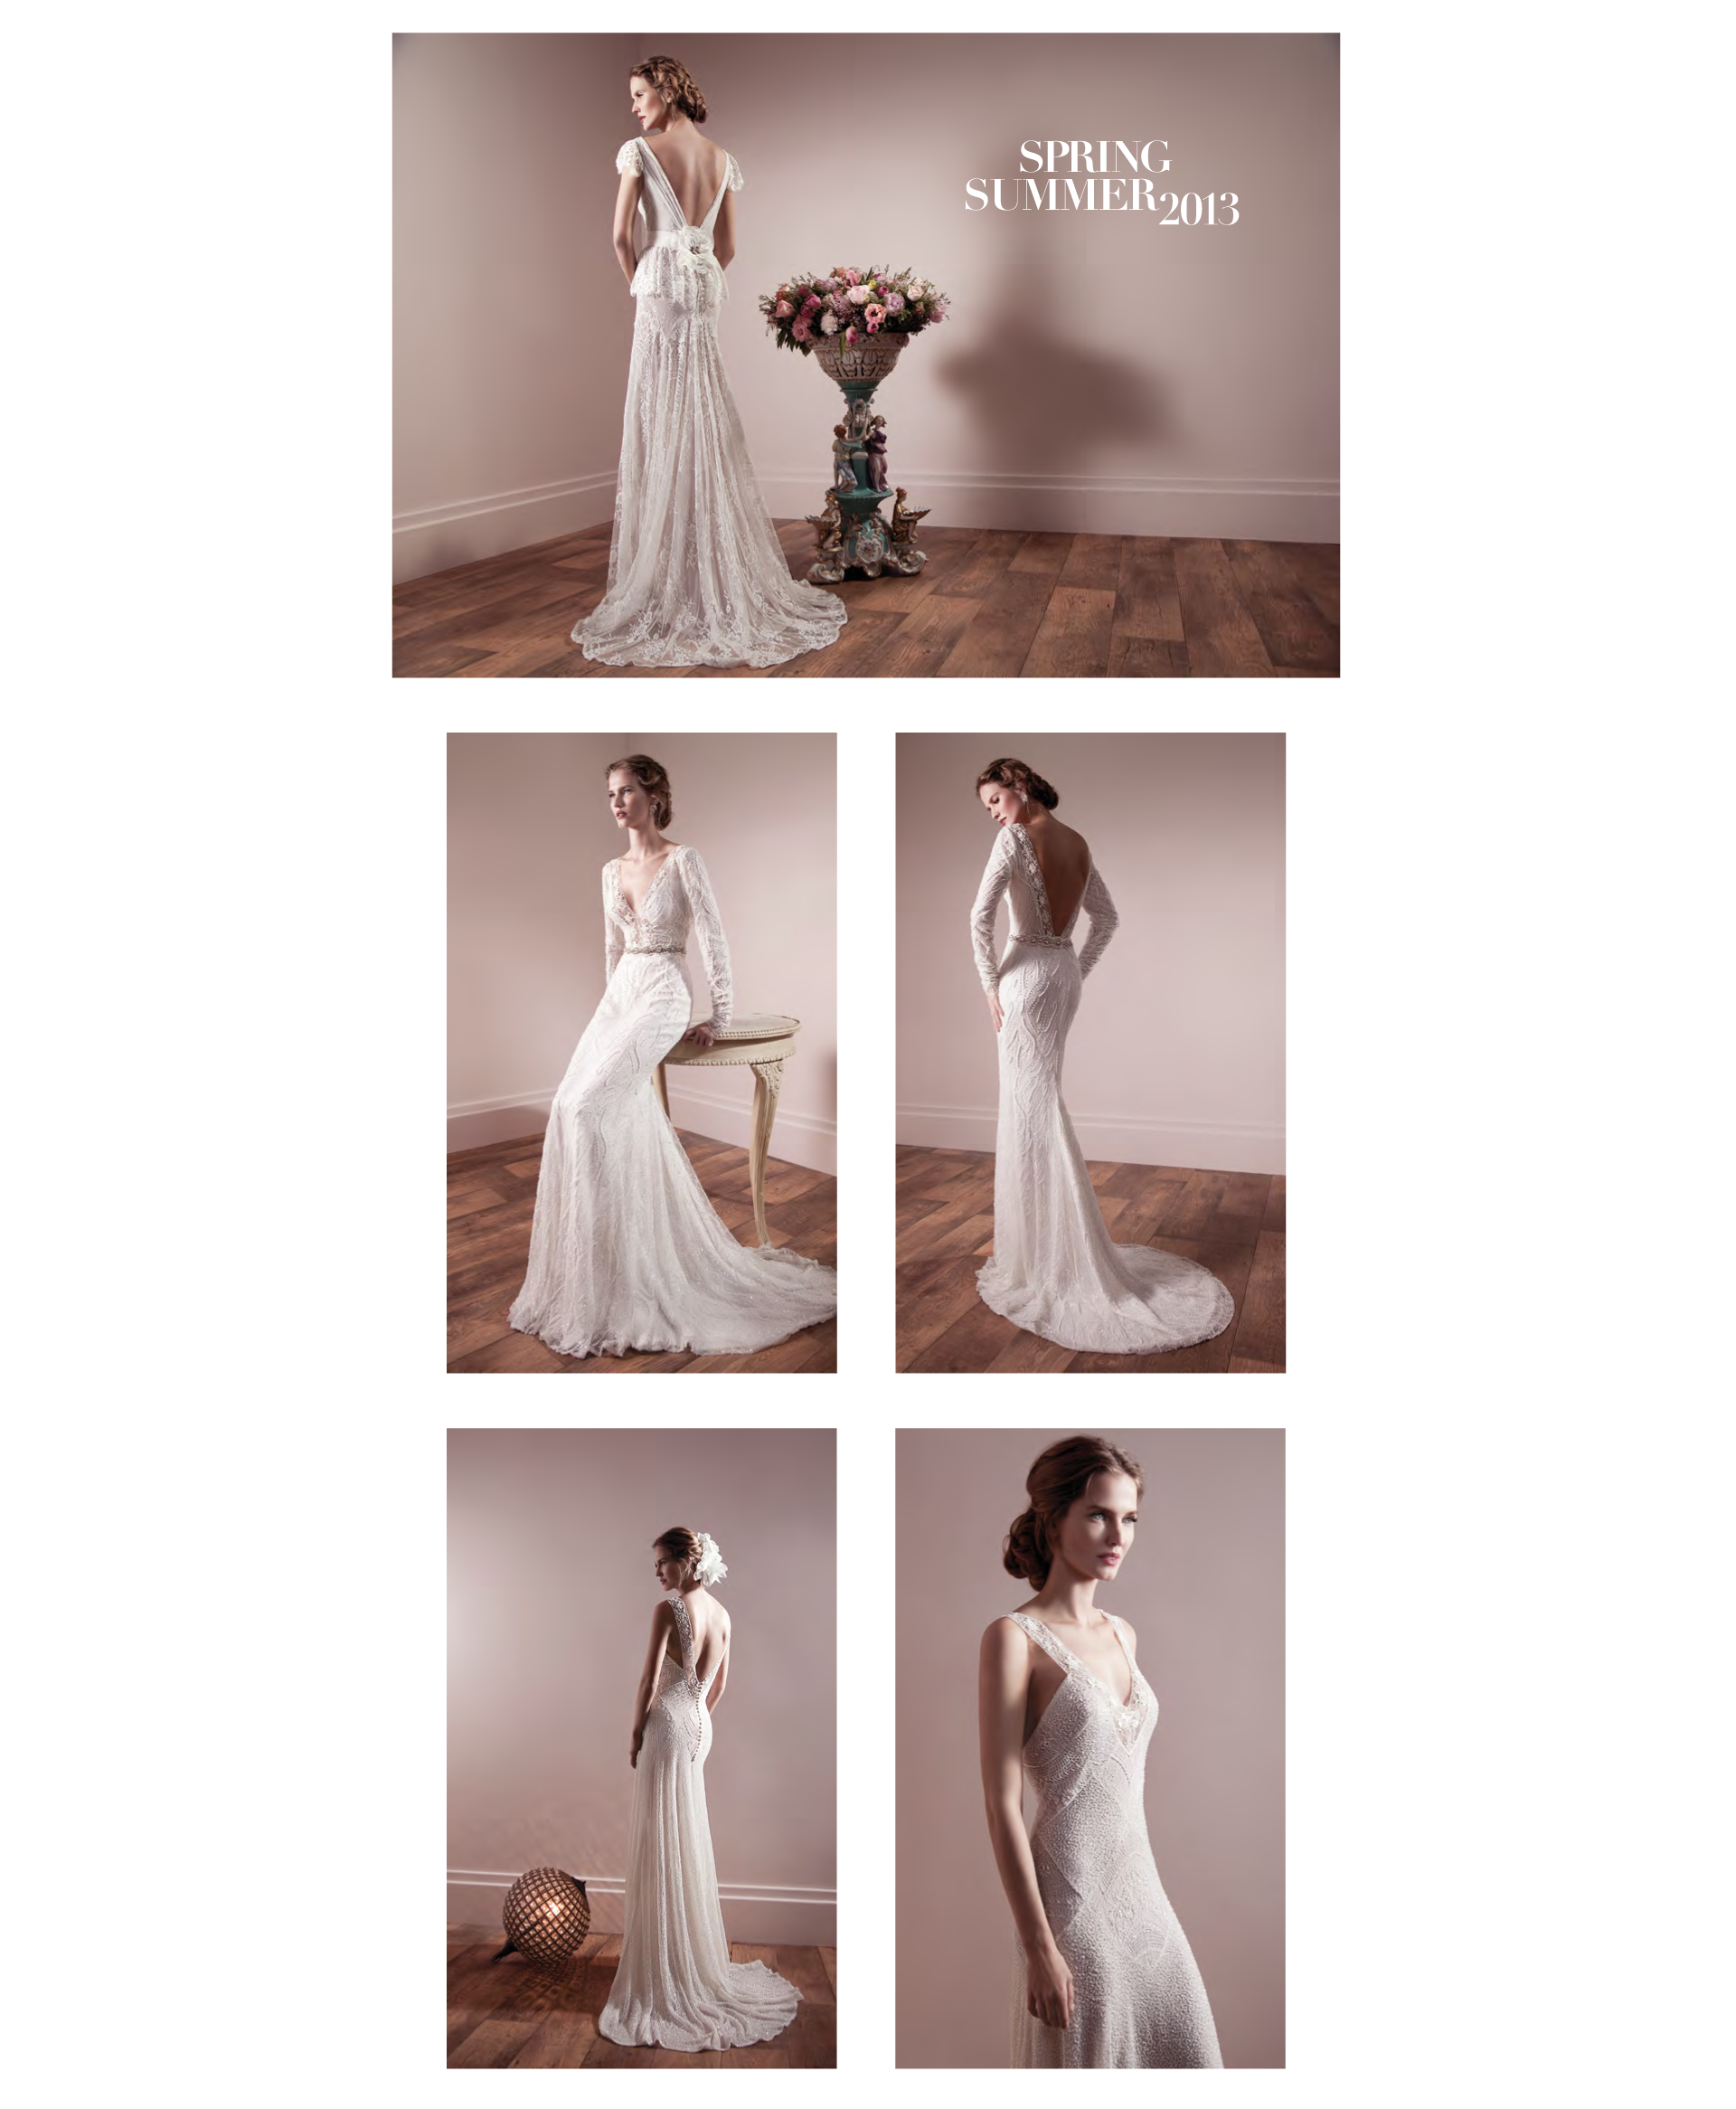 Lihi-Hod-Bridal-Body-04-copy-2-Nadmiz-Graphic-Design-Nadav-Mizrahi